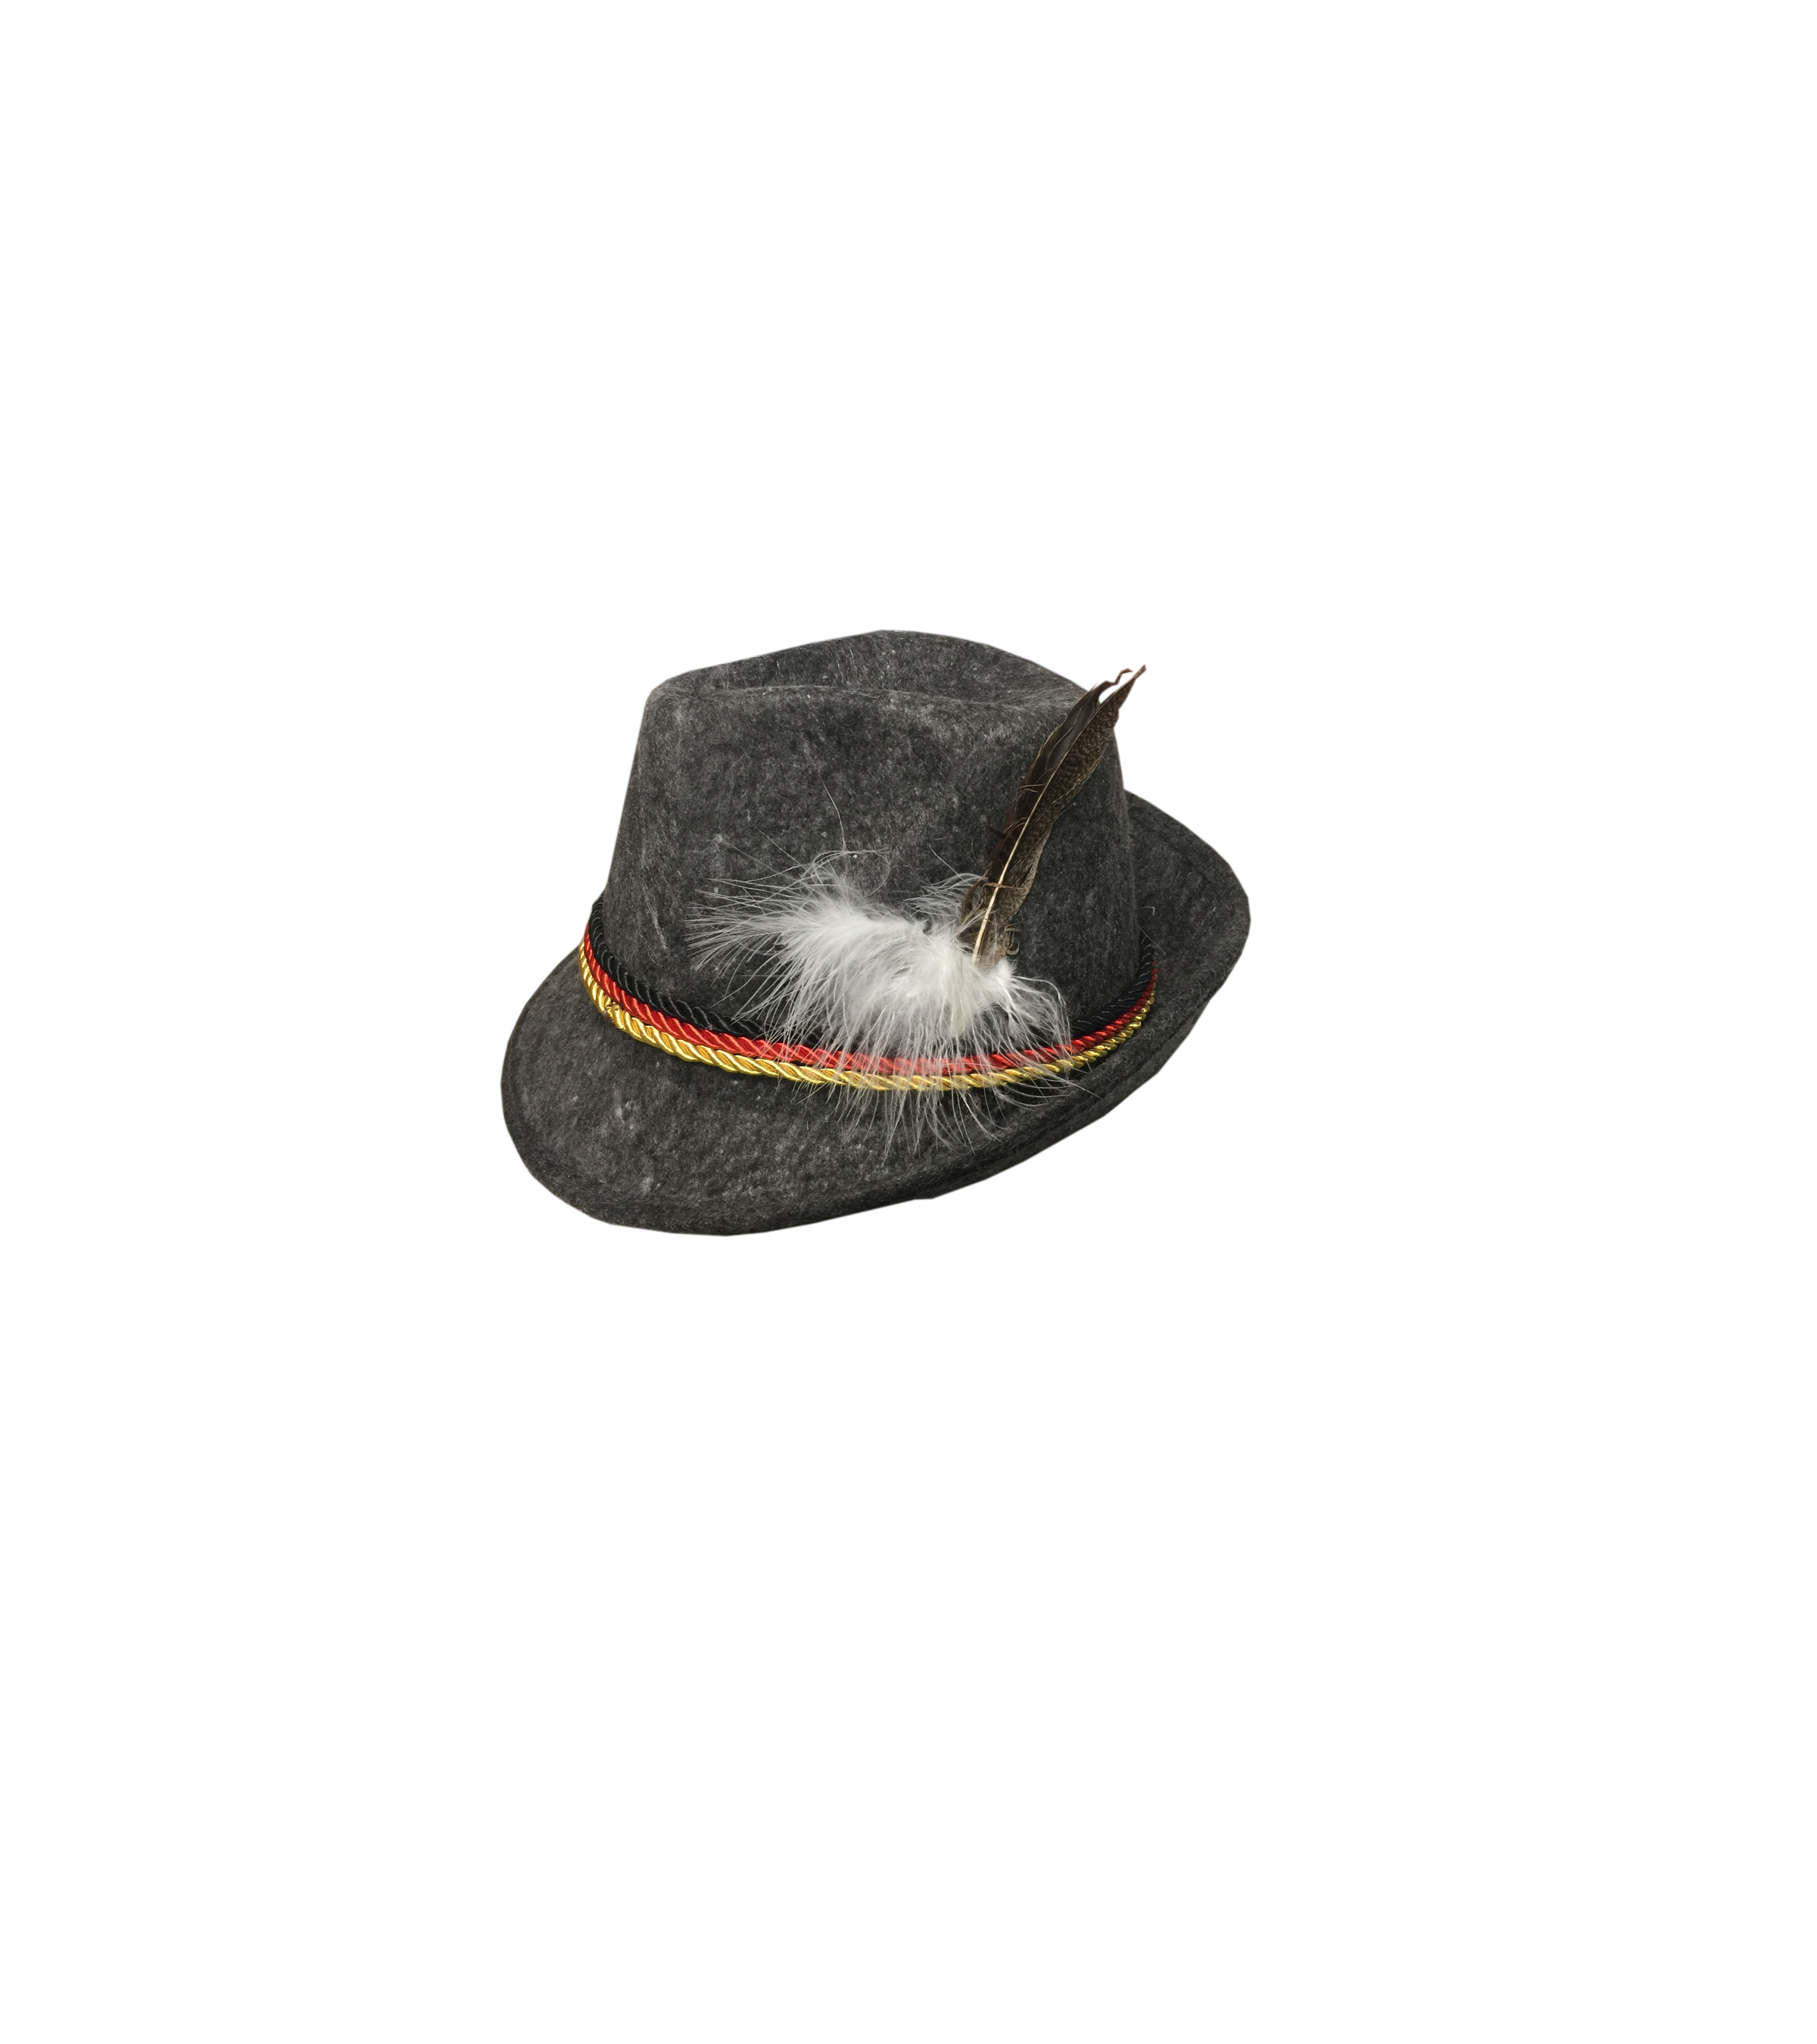 Bavarian hat - sold out